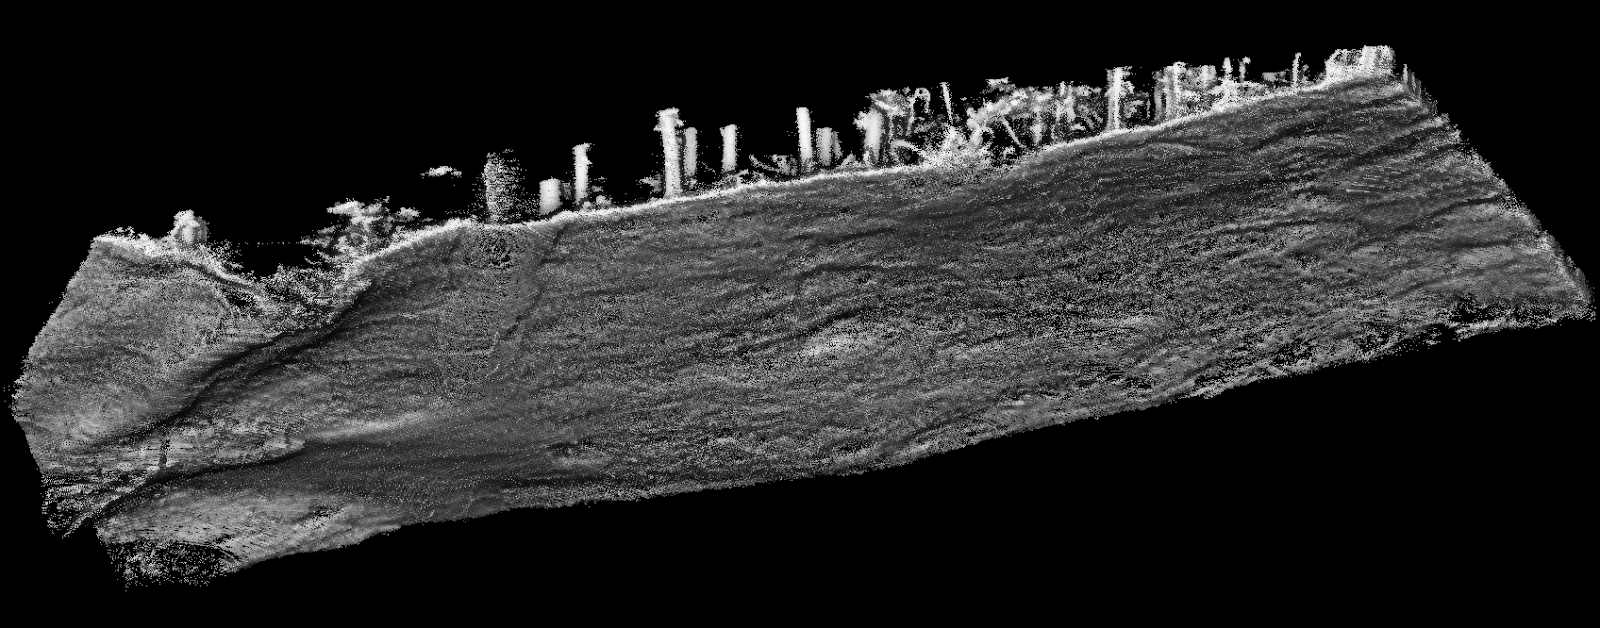 A black and white point cloud depicting the underside topology of a section of dense forest.